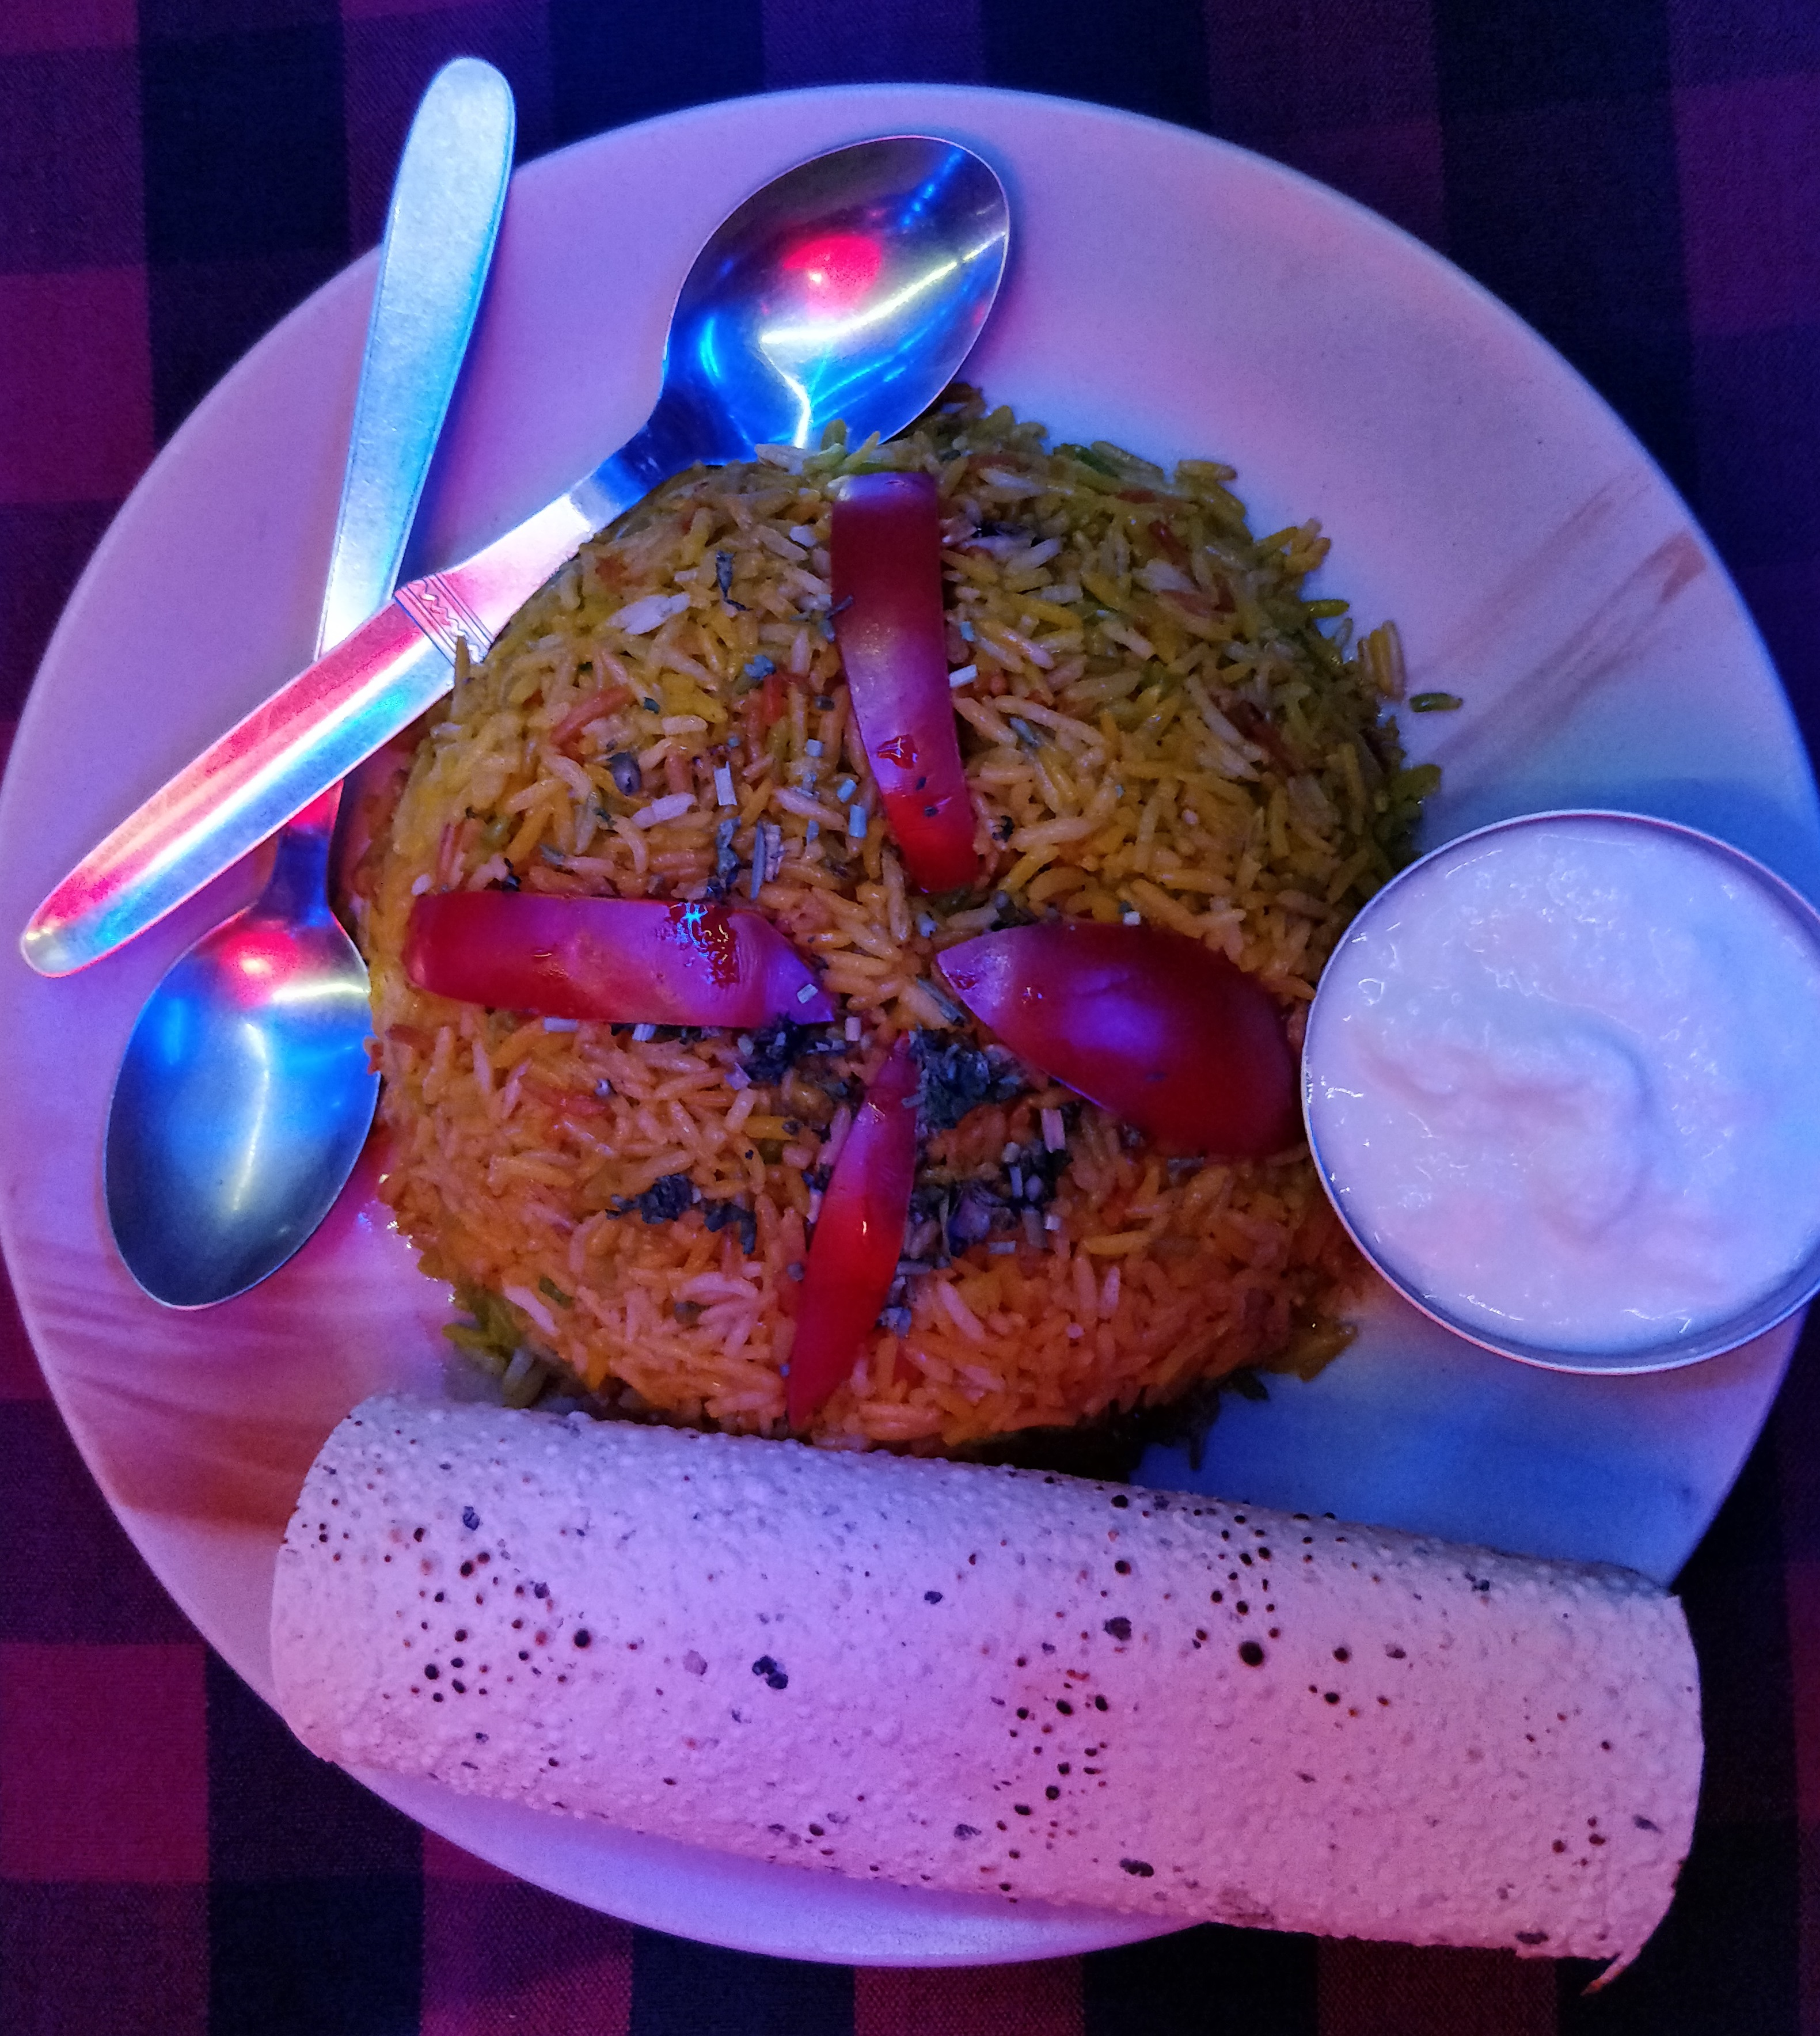 A delicious meal consisting of Biryani, curd and papad at Chinatown Rooftop Cafe in Kasol, India.